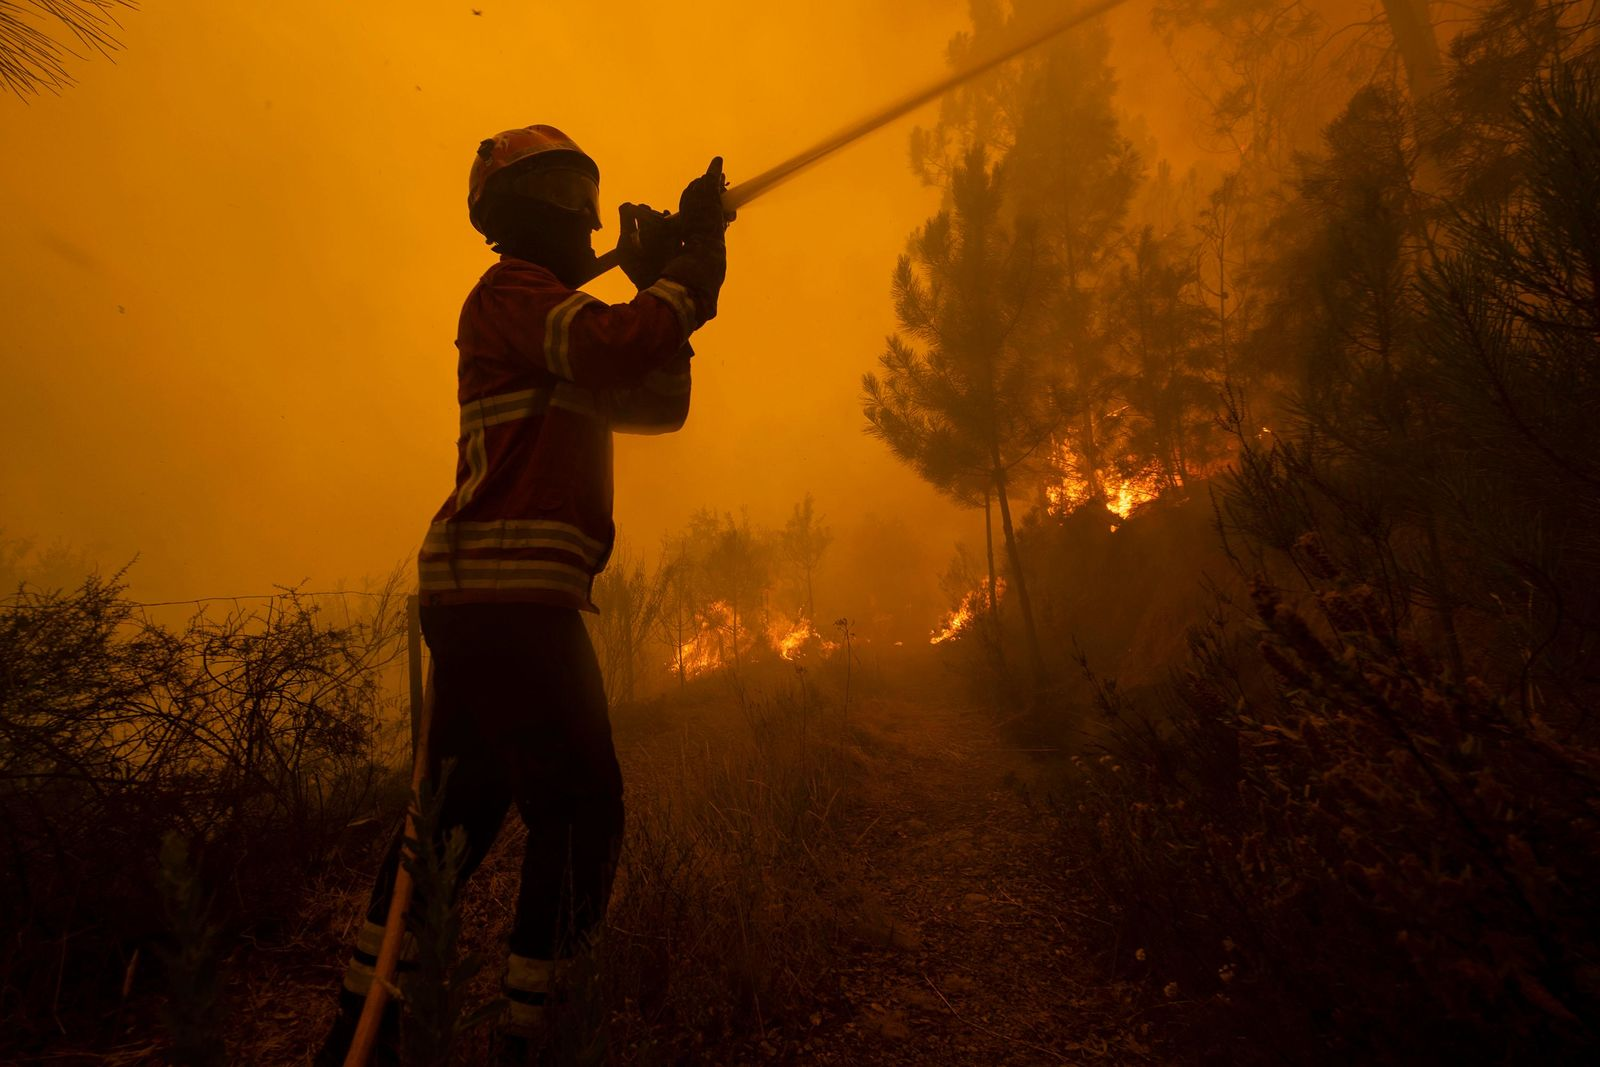 Firefighters try to extinguish a wildfire at the village of Chaveira, near Macao, in central Portugal on Monday, July 22, 2019. (AP Photo/Sergio Azenha)